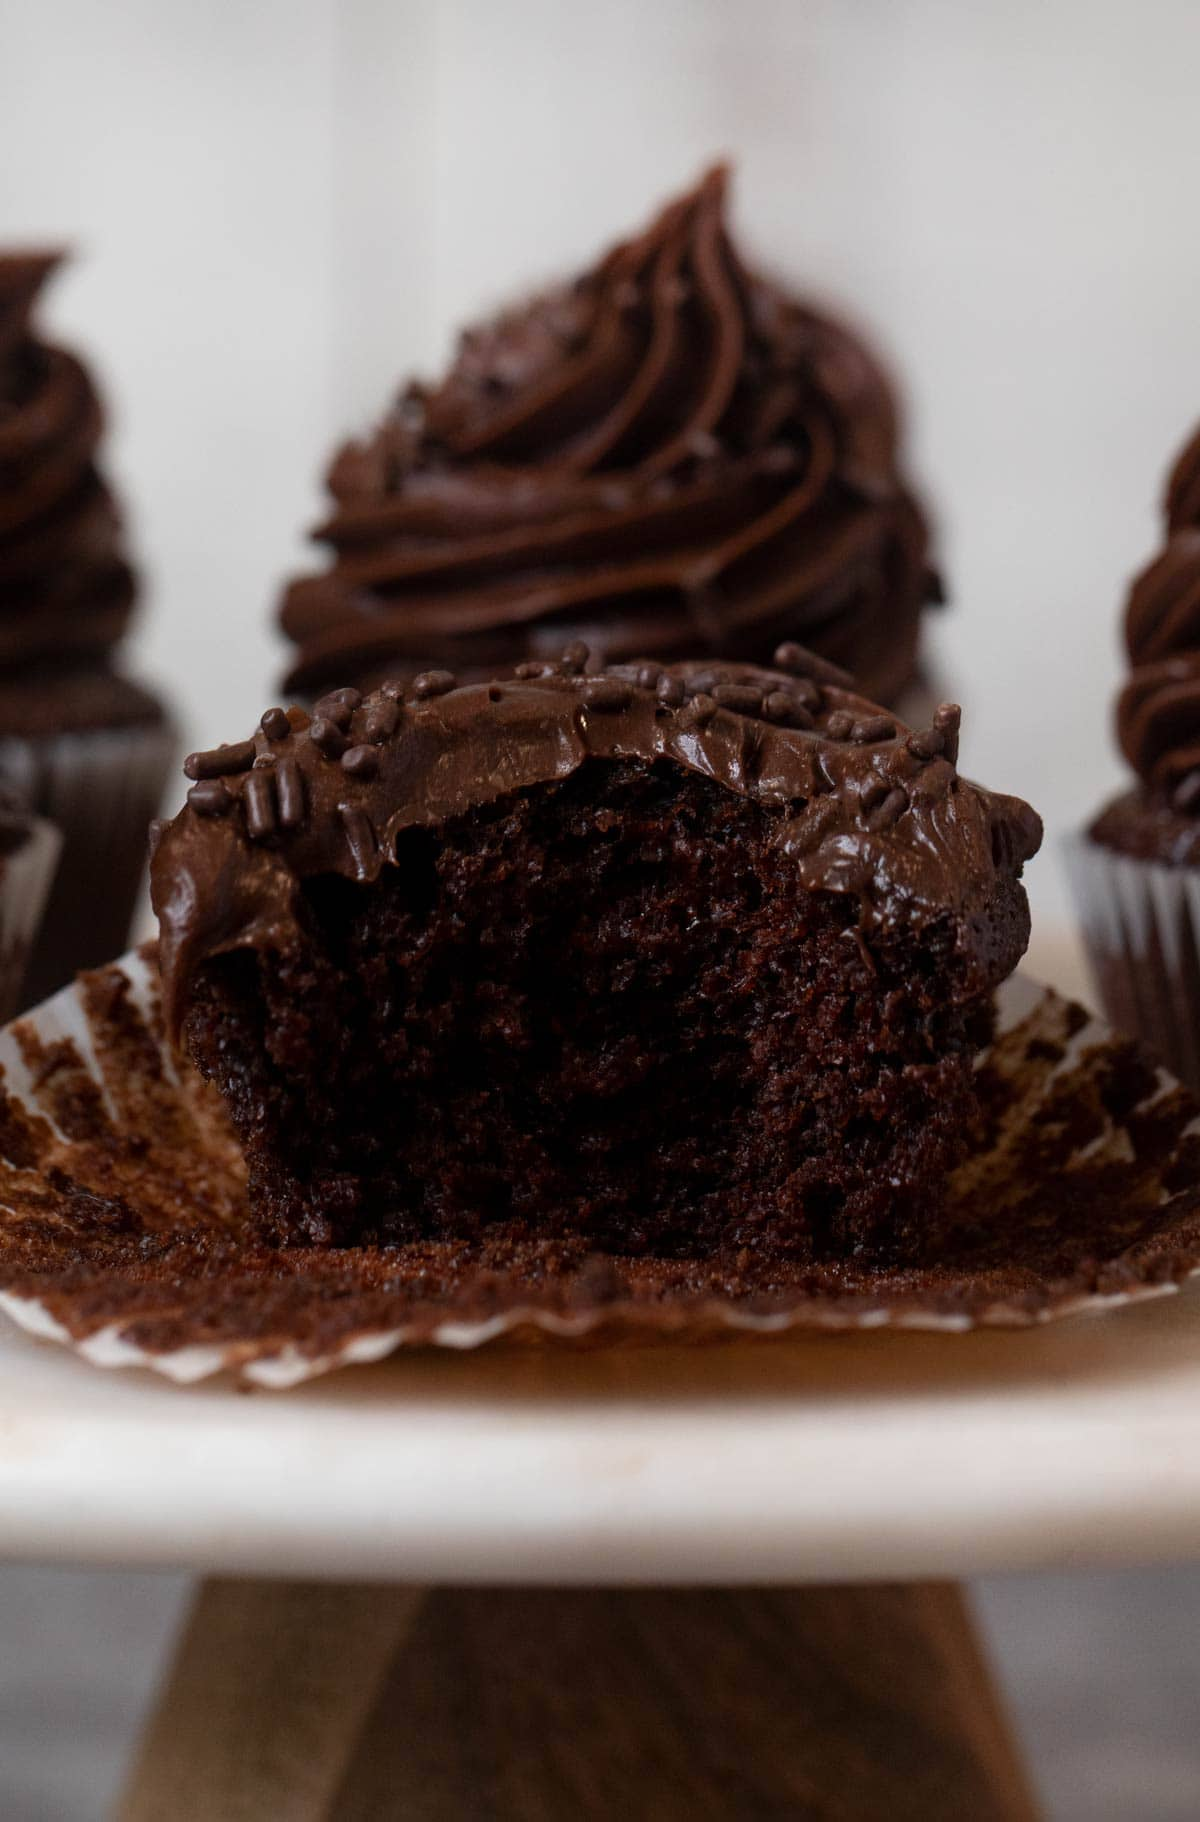 Chocolate Cupcake with Chocolate Frosting and chocolate sprinkles with bite removed